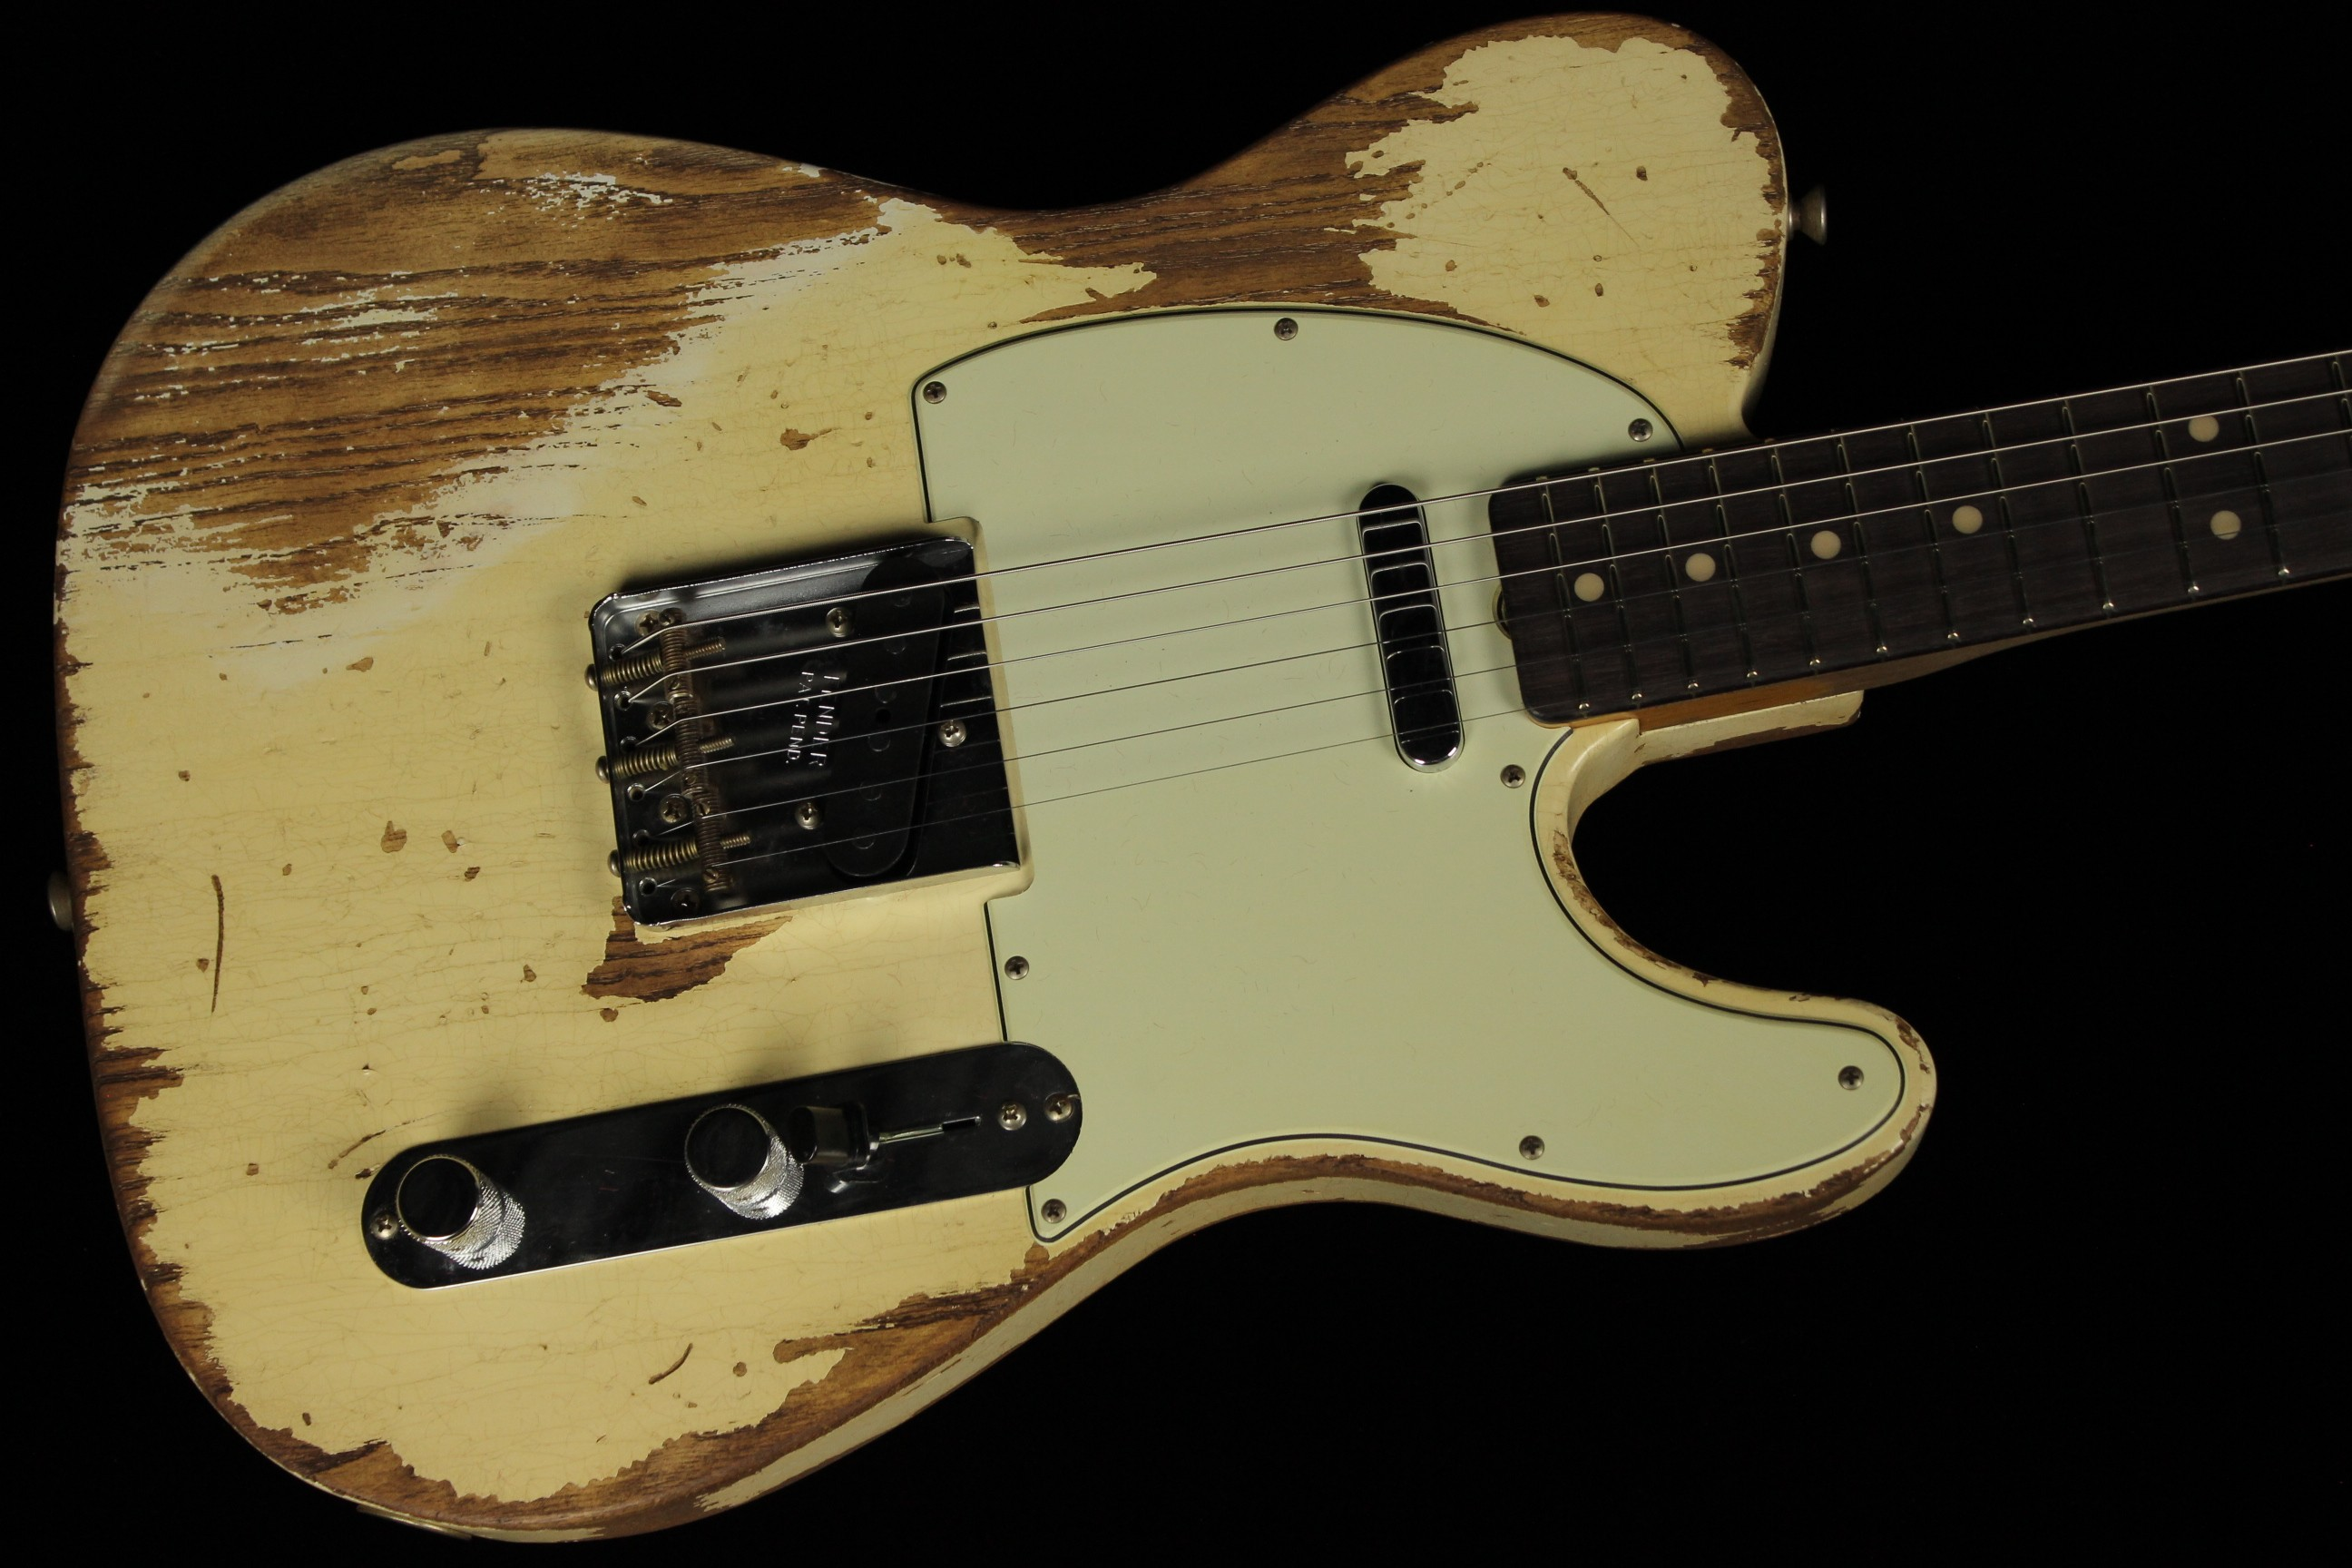 fender custom 1963 telecaster super heavy relic limited super faded aged olympic white sn. Black Bedroom Furniture Sets. Home Design Ideas